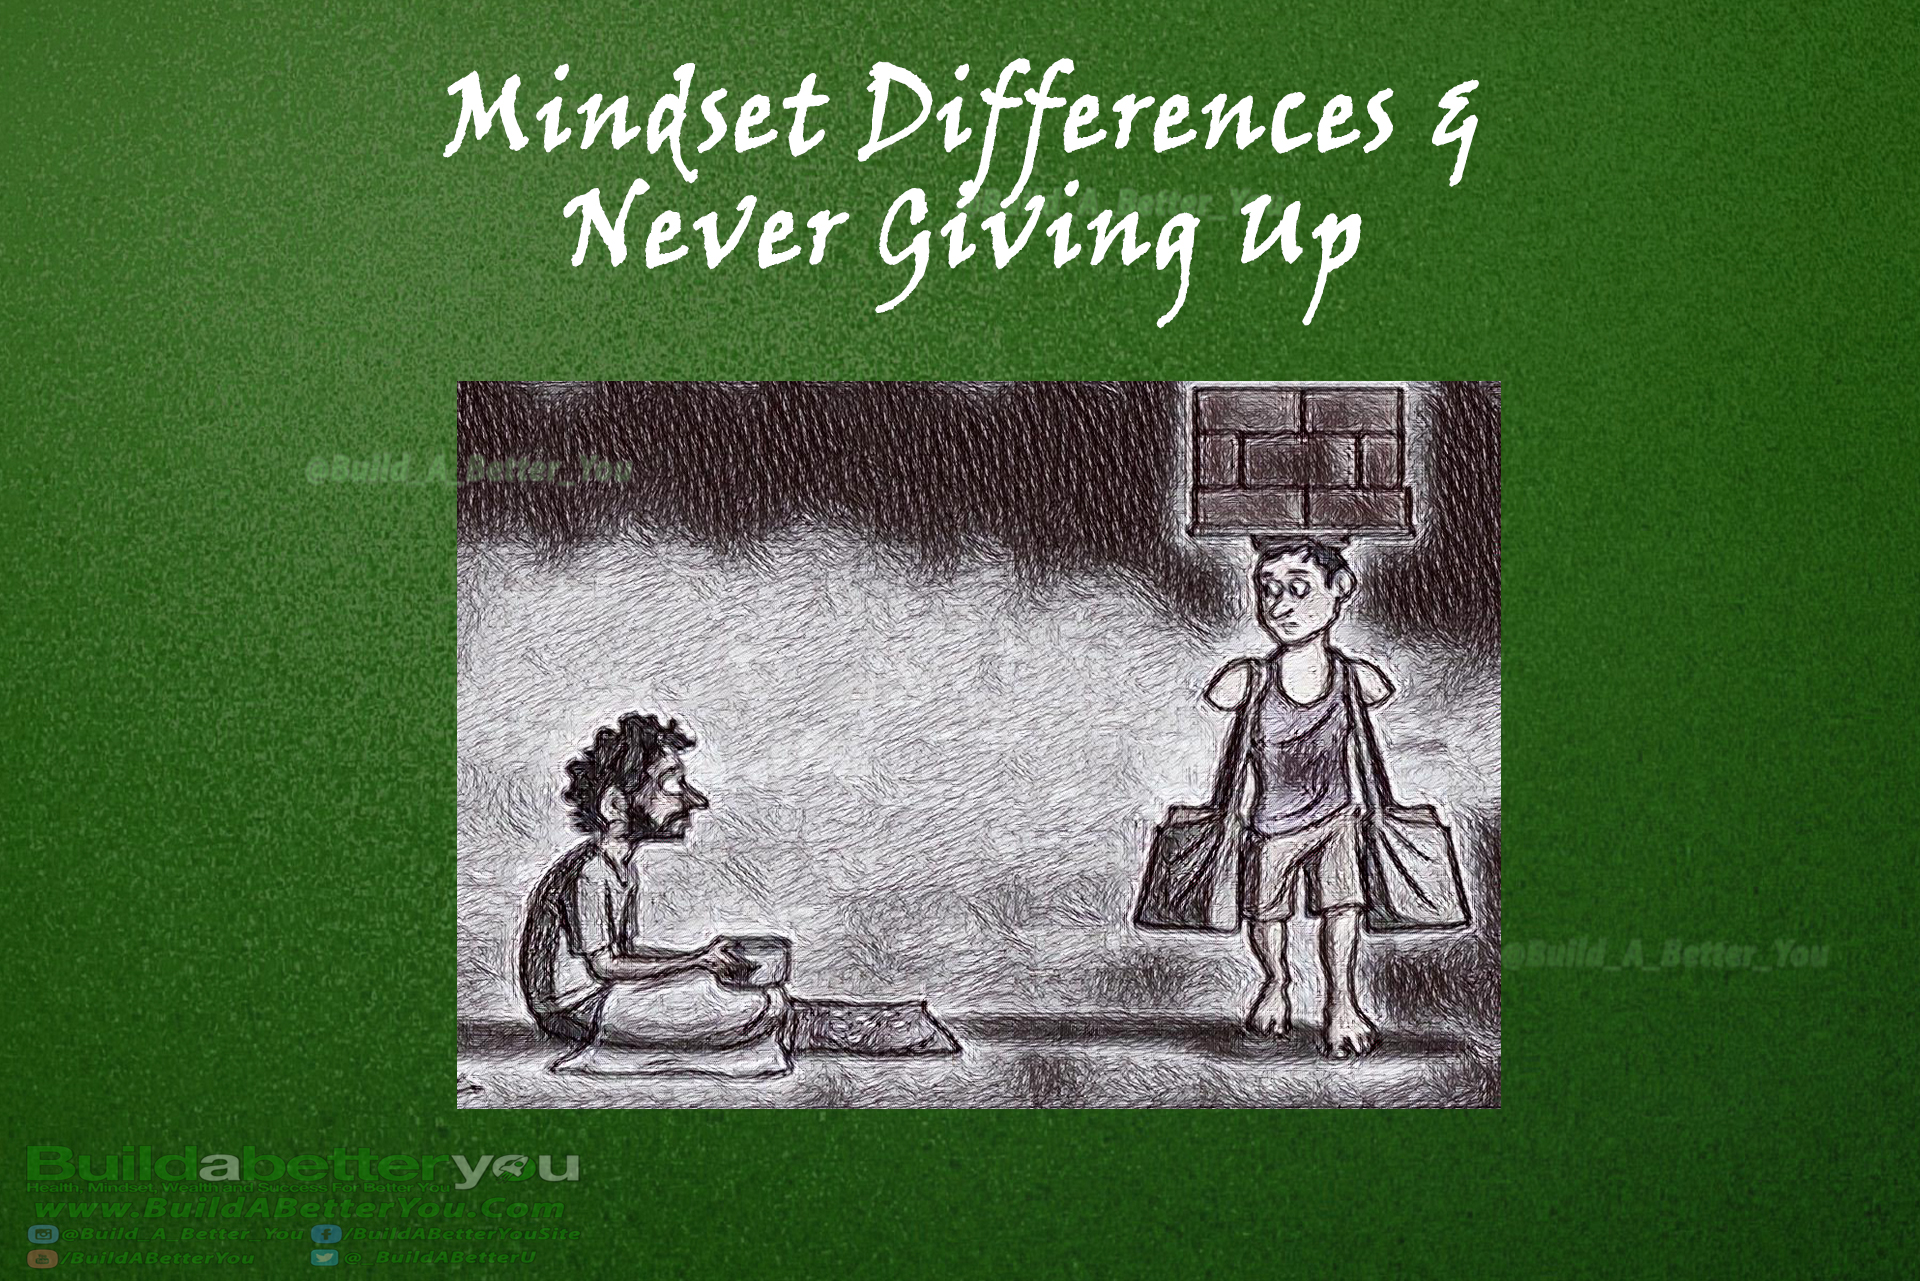 [Image] Mindset Differences and Never Giving Up